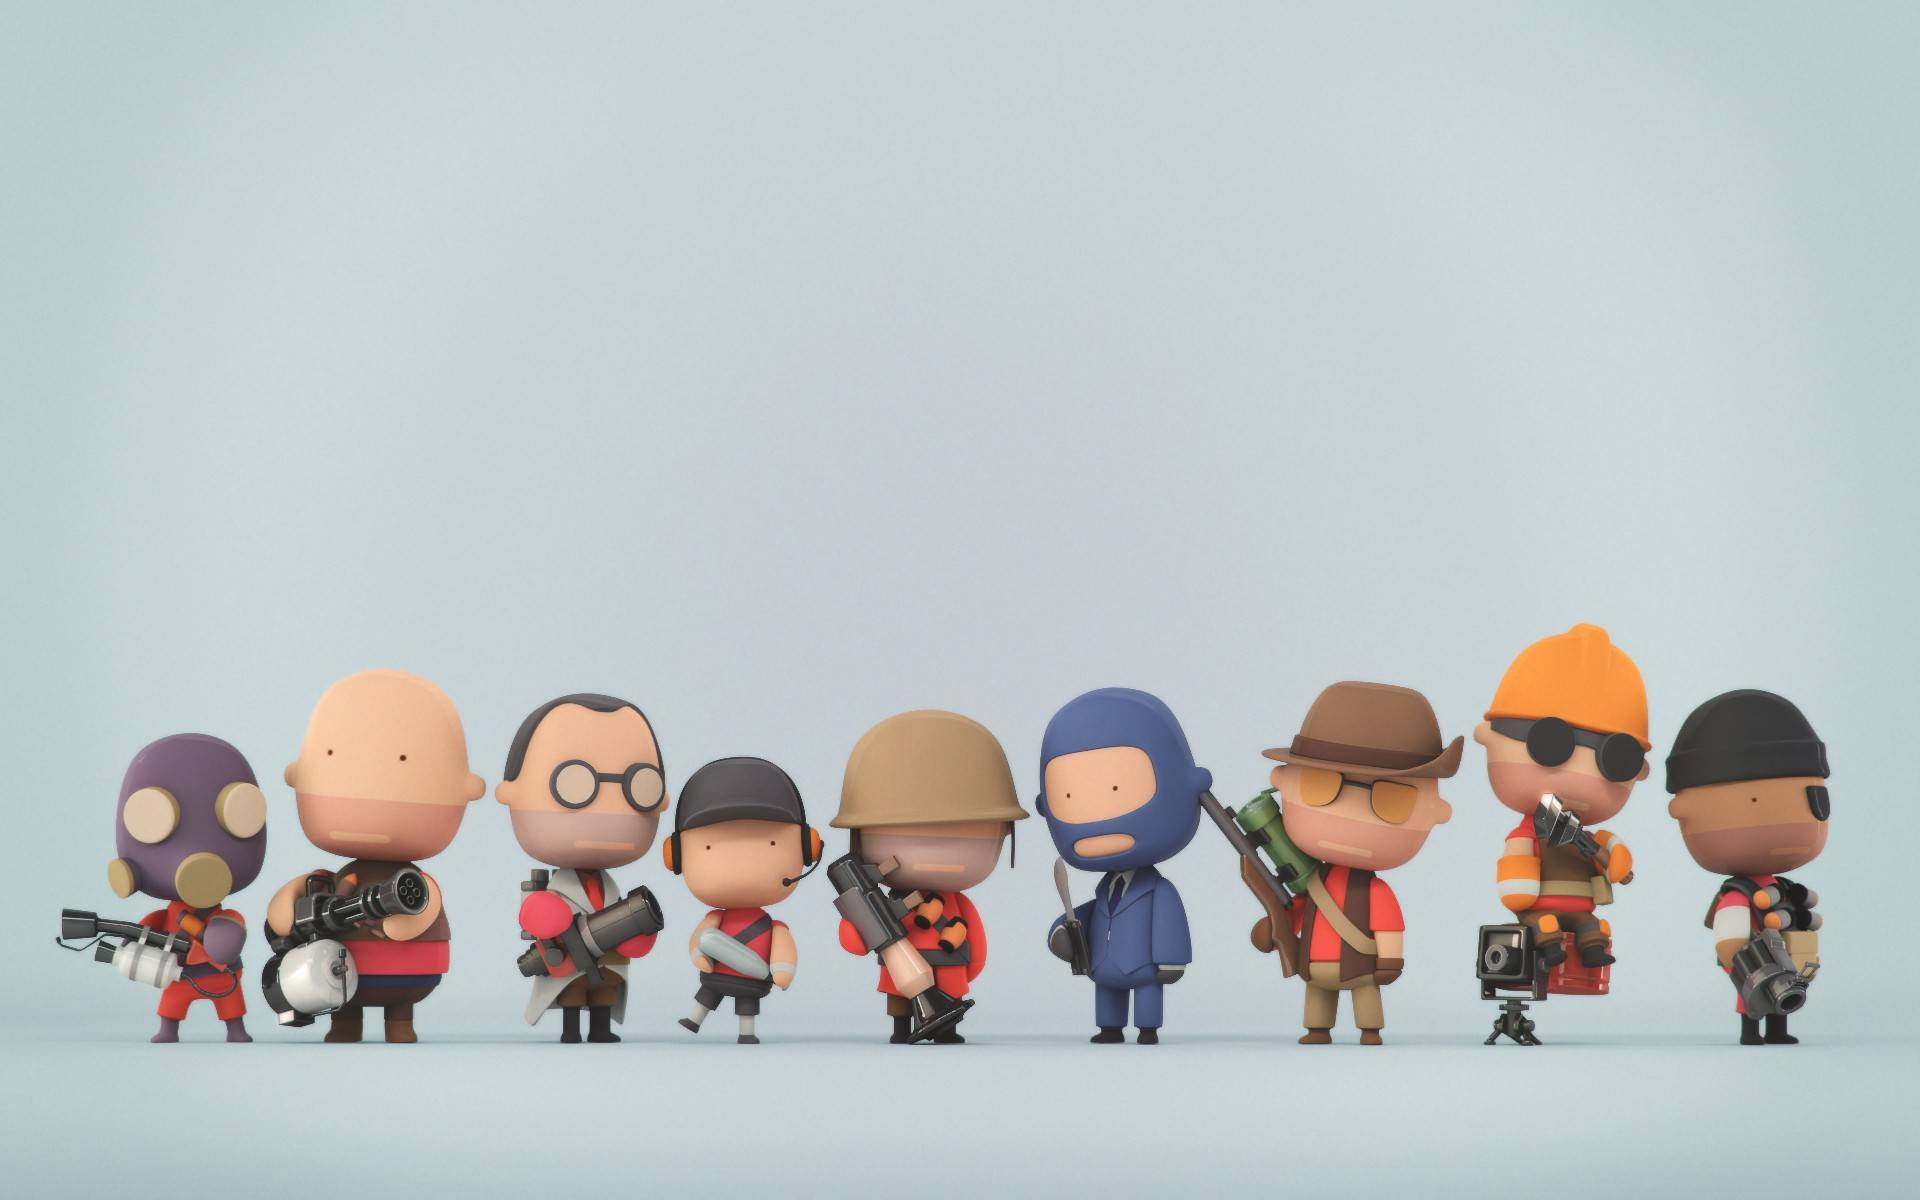 Tf2 Desktop Backgrounds